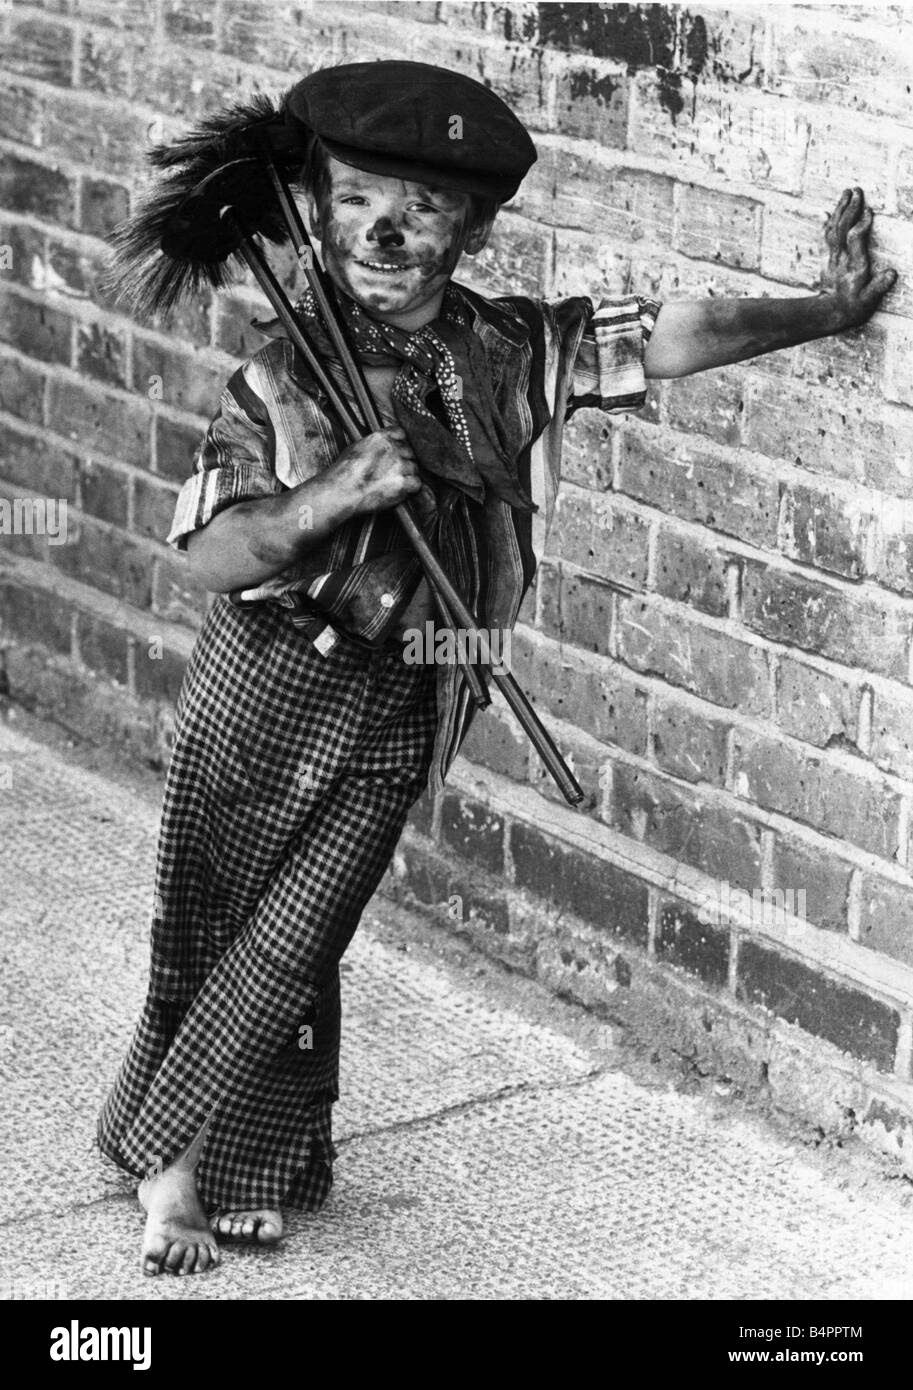 http://c8.alamy.com/comp/B4PPTM/four-year-old-chimney-sweep-tommy-stafford-in-fancy-dress-to-celebrate-B4PPTM.jpg